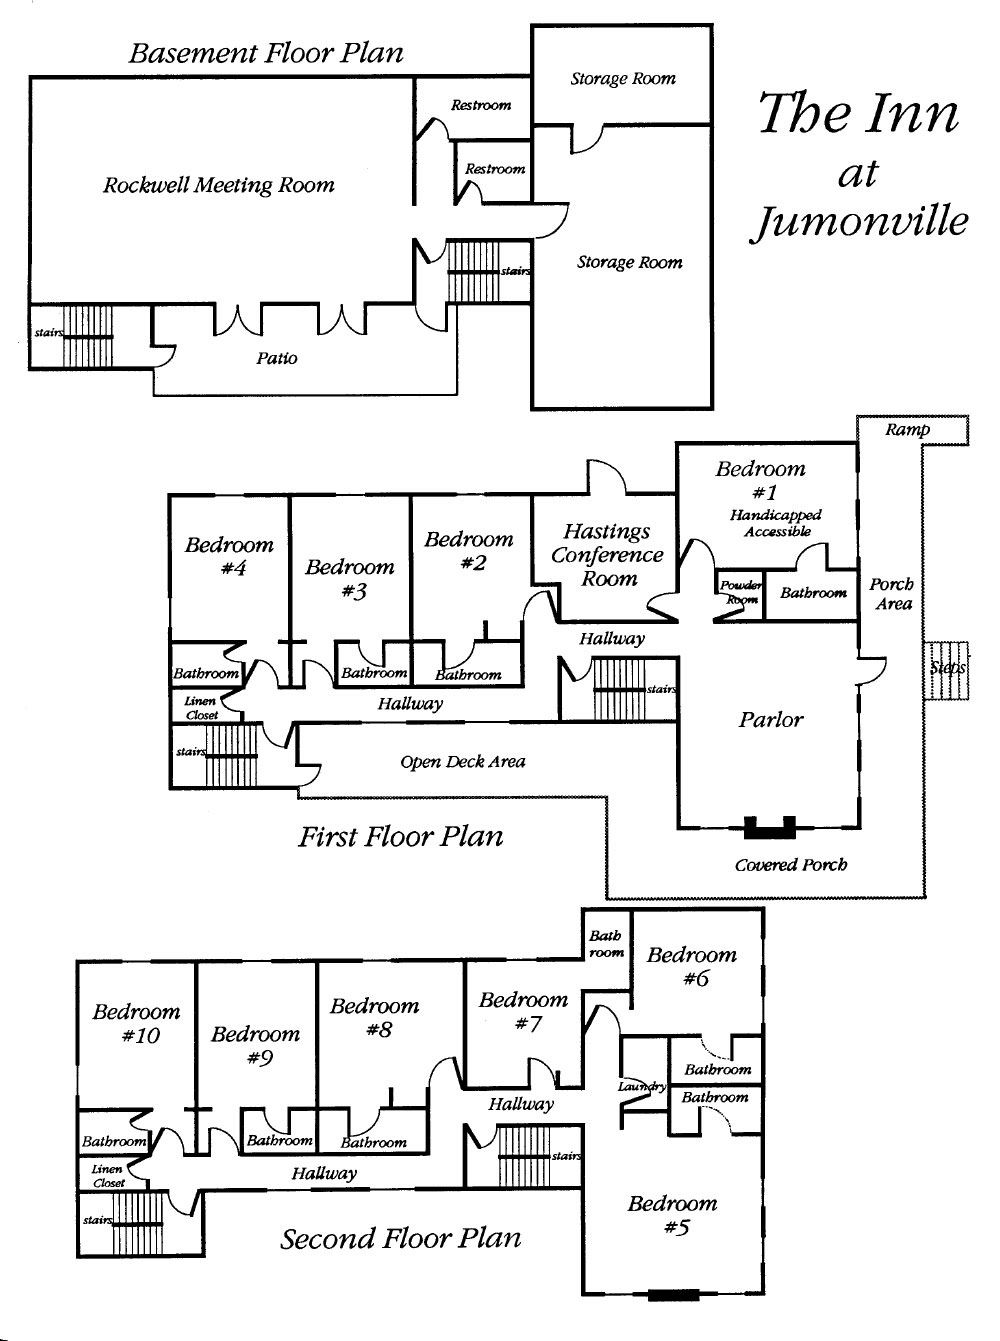 Inn at Jumonville Floor PLan